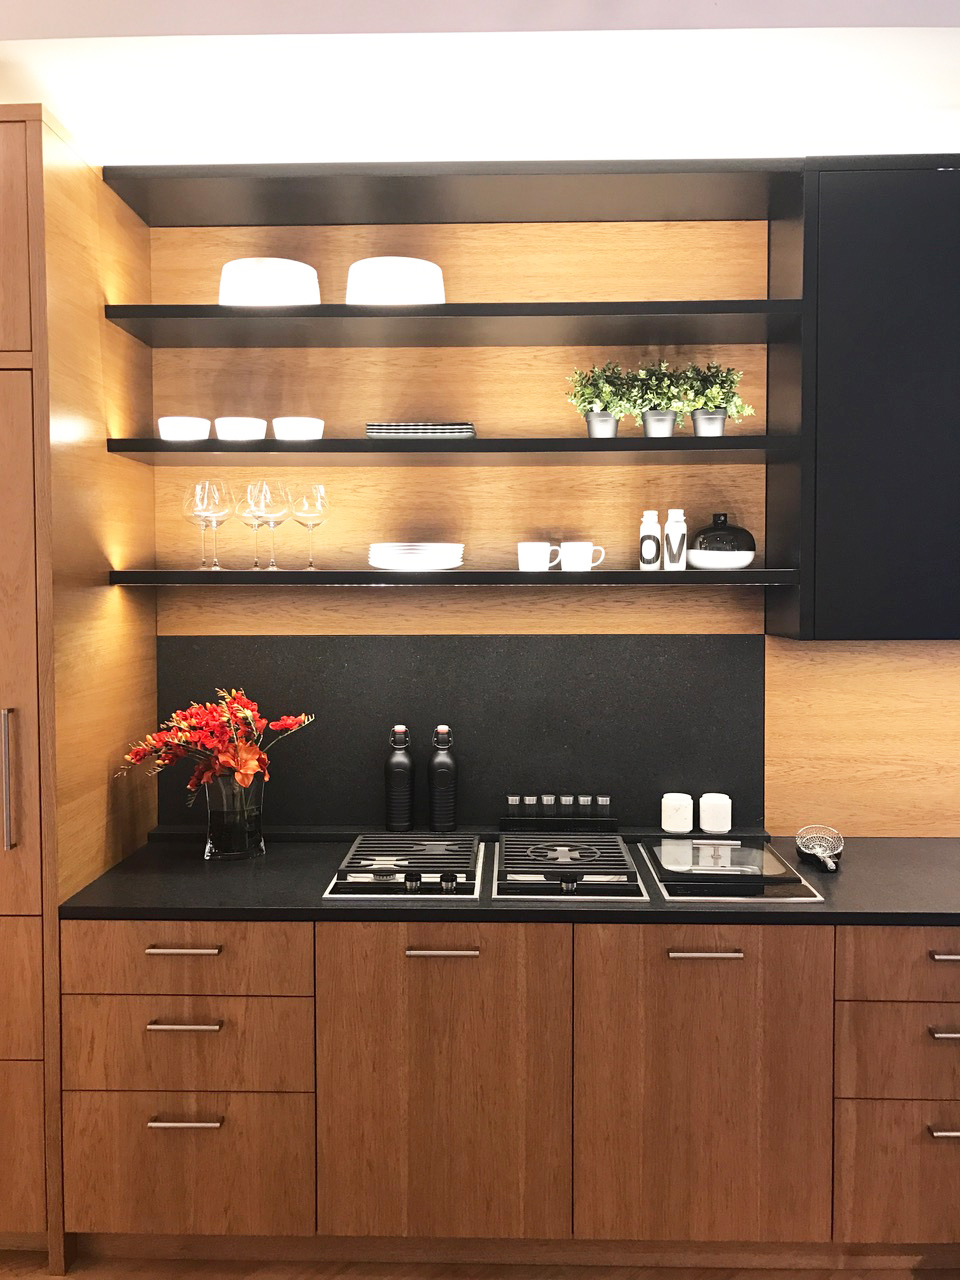 ... High Contrast Kitchen. We Always Recommend Working With A Designer Or A  Professional Like The Consultants At Fretz To Be Sure That You Havenu0027t ...